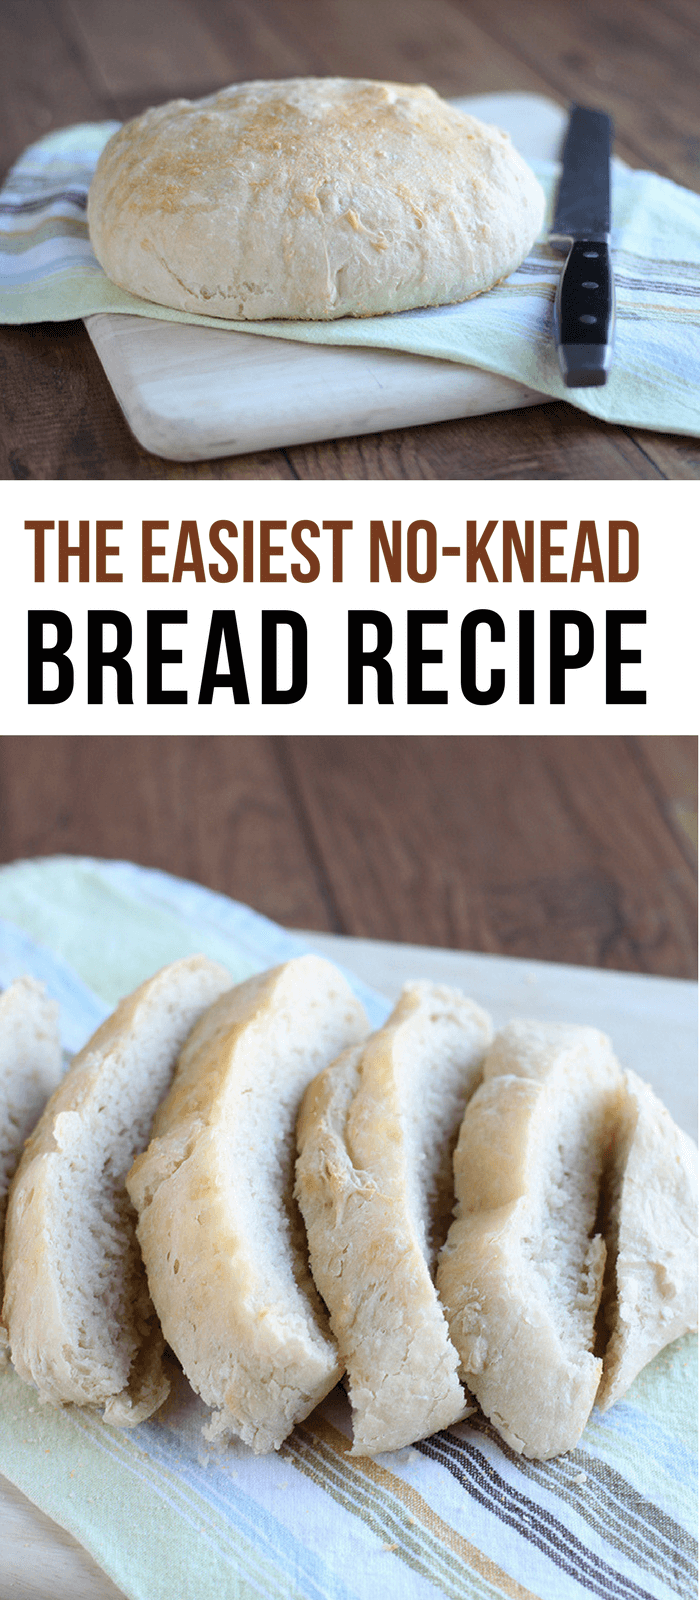 The Easiest No-Knead Bread Recipe